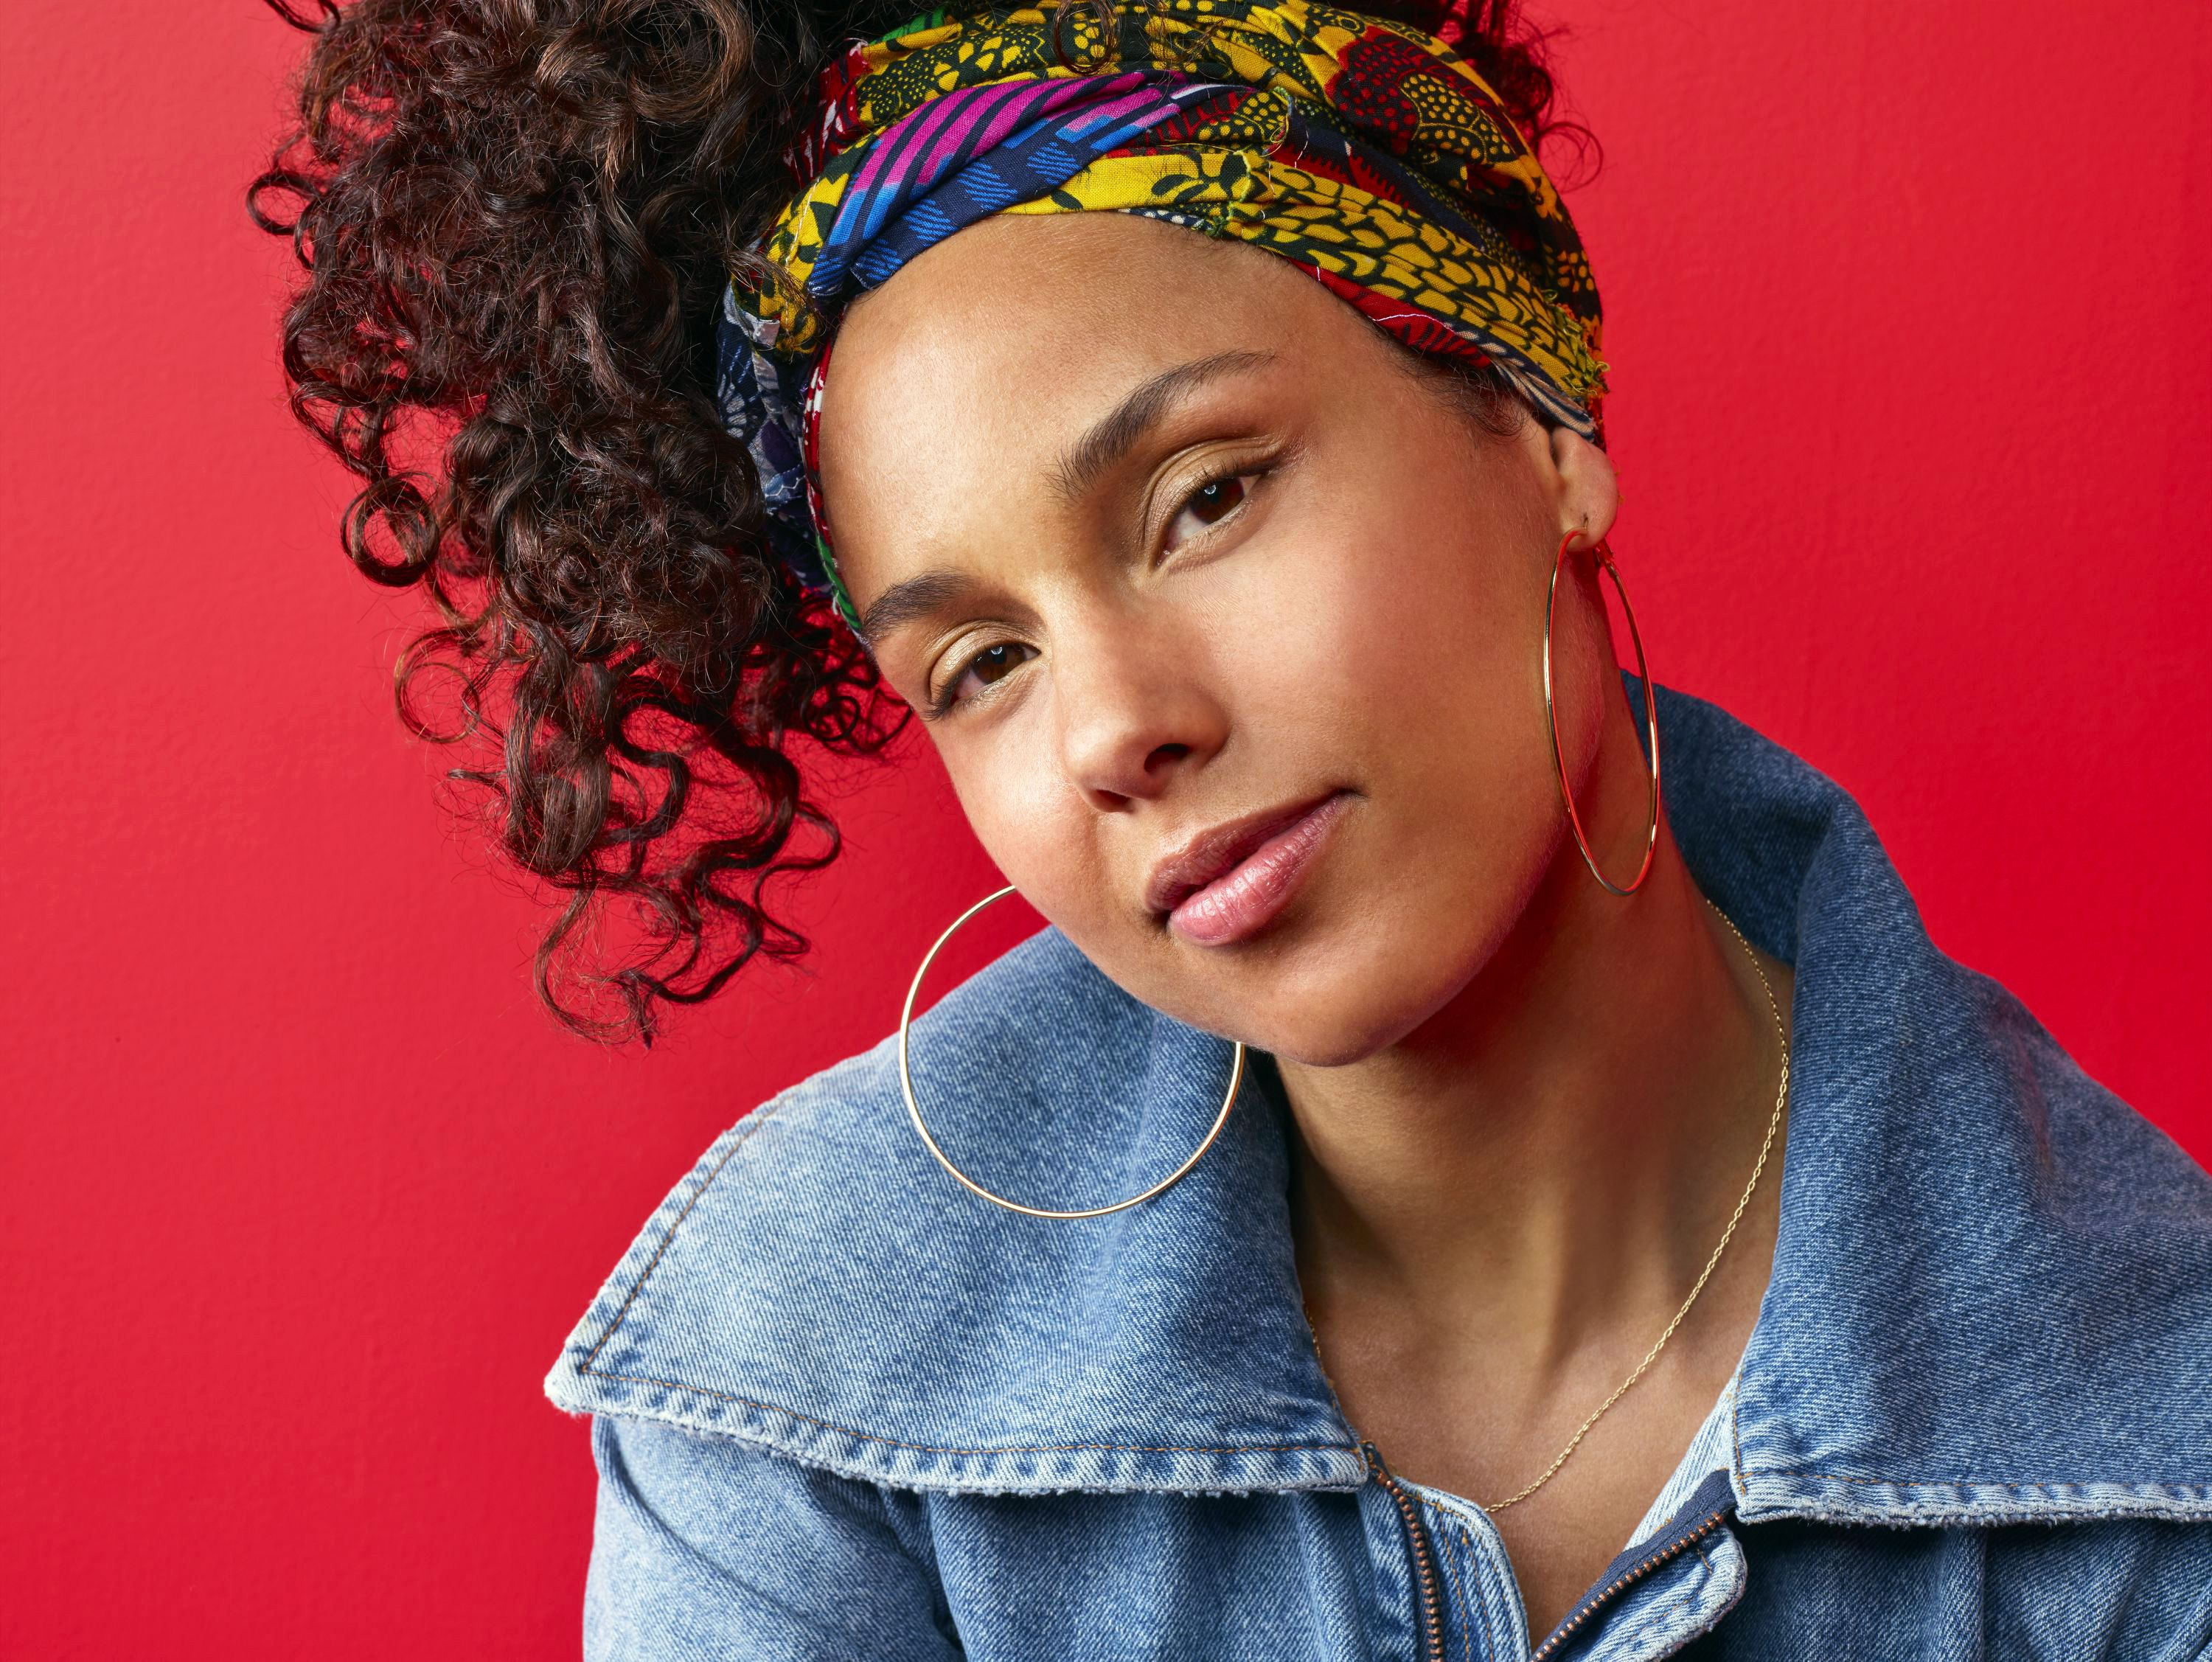 Alicia Keys Got a Bob Haircut and Looks Totally Different